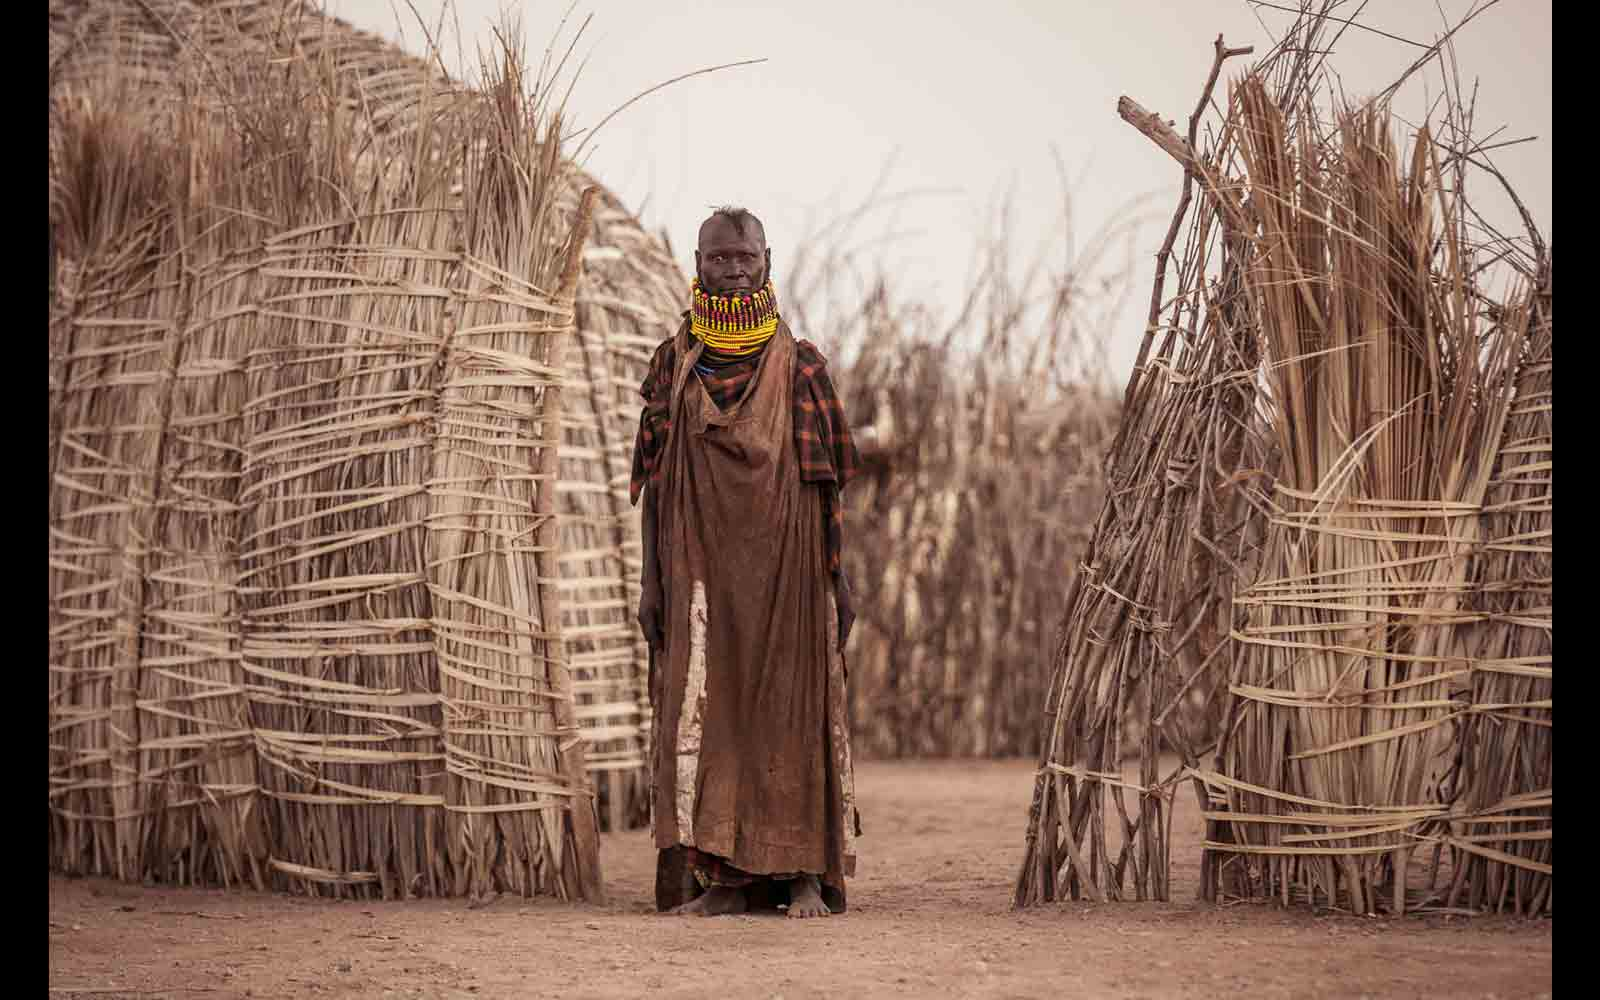 "Turkana tribeswoman outside her home – the huts and fences are constructed from doum palm leaves © <a href=""https://content.notesfromtheroad.ch/turkana-cradle-of-mankind/"" target=""_blank""> Joe Bürgi </a>"